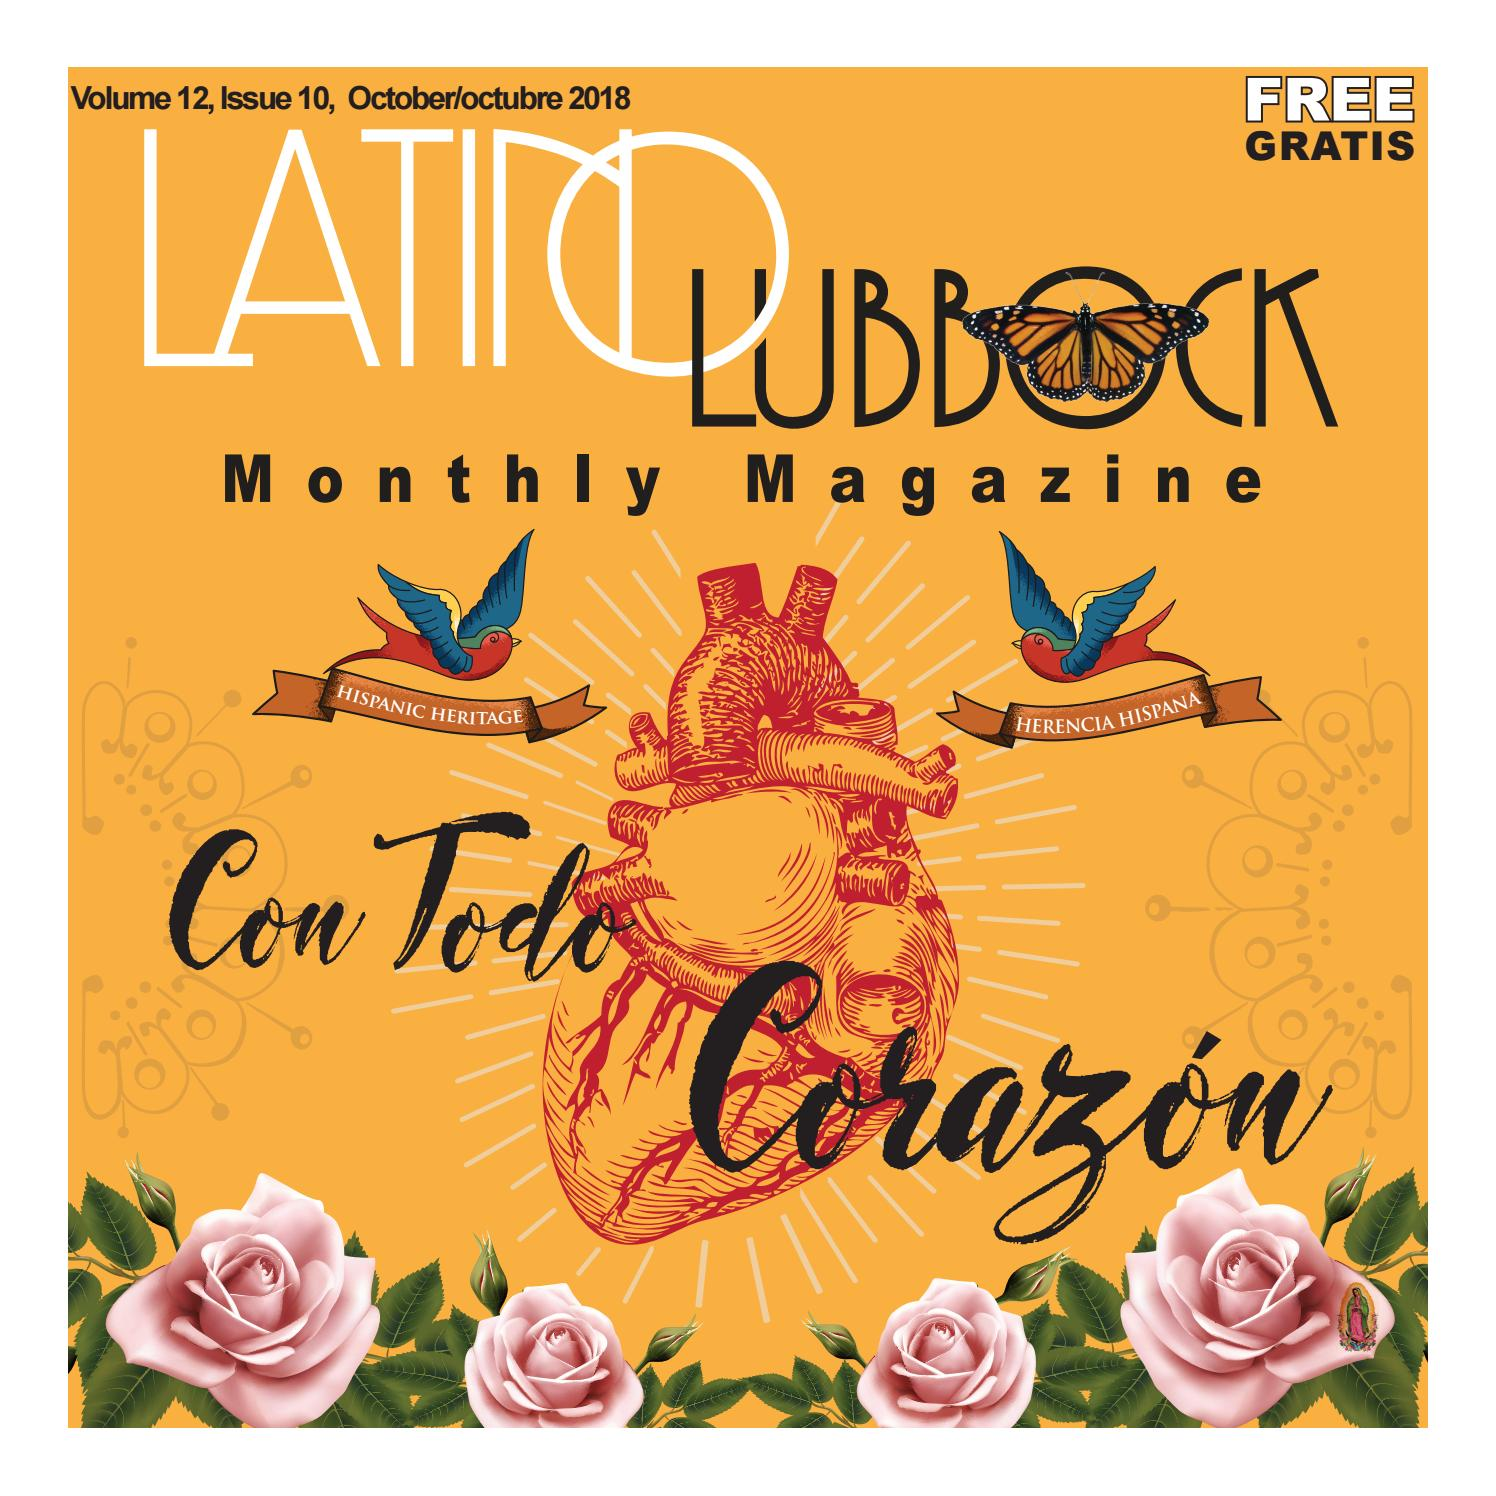 Volume 12, Issue 10, October/octubre 2018 by Christy